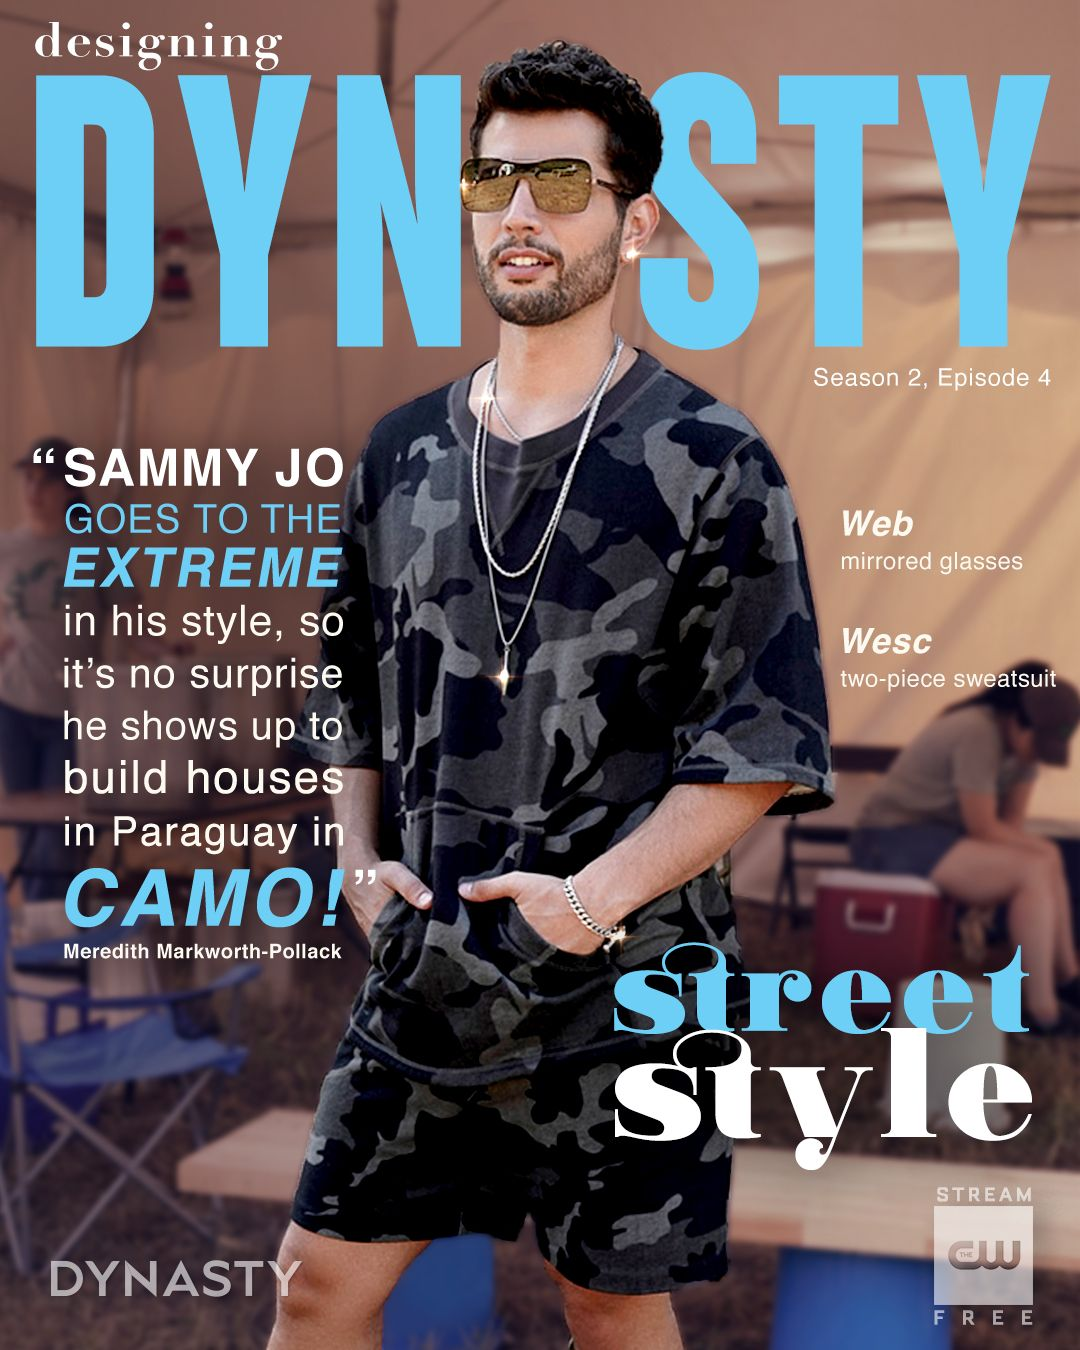 Dress for the life of luxury you want. Stream Dynasty for